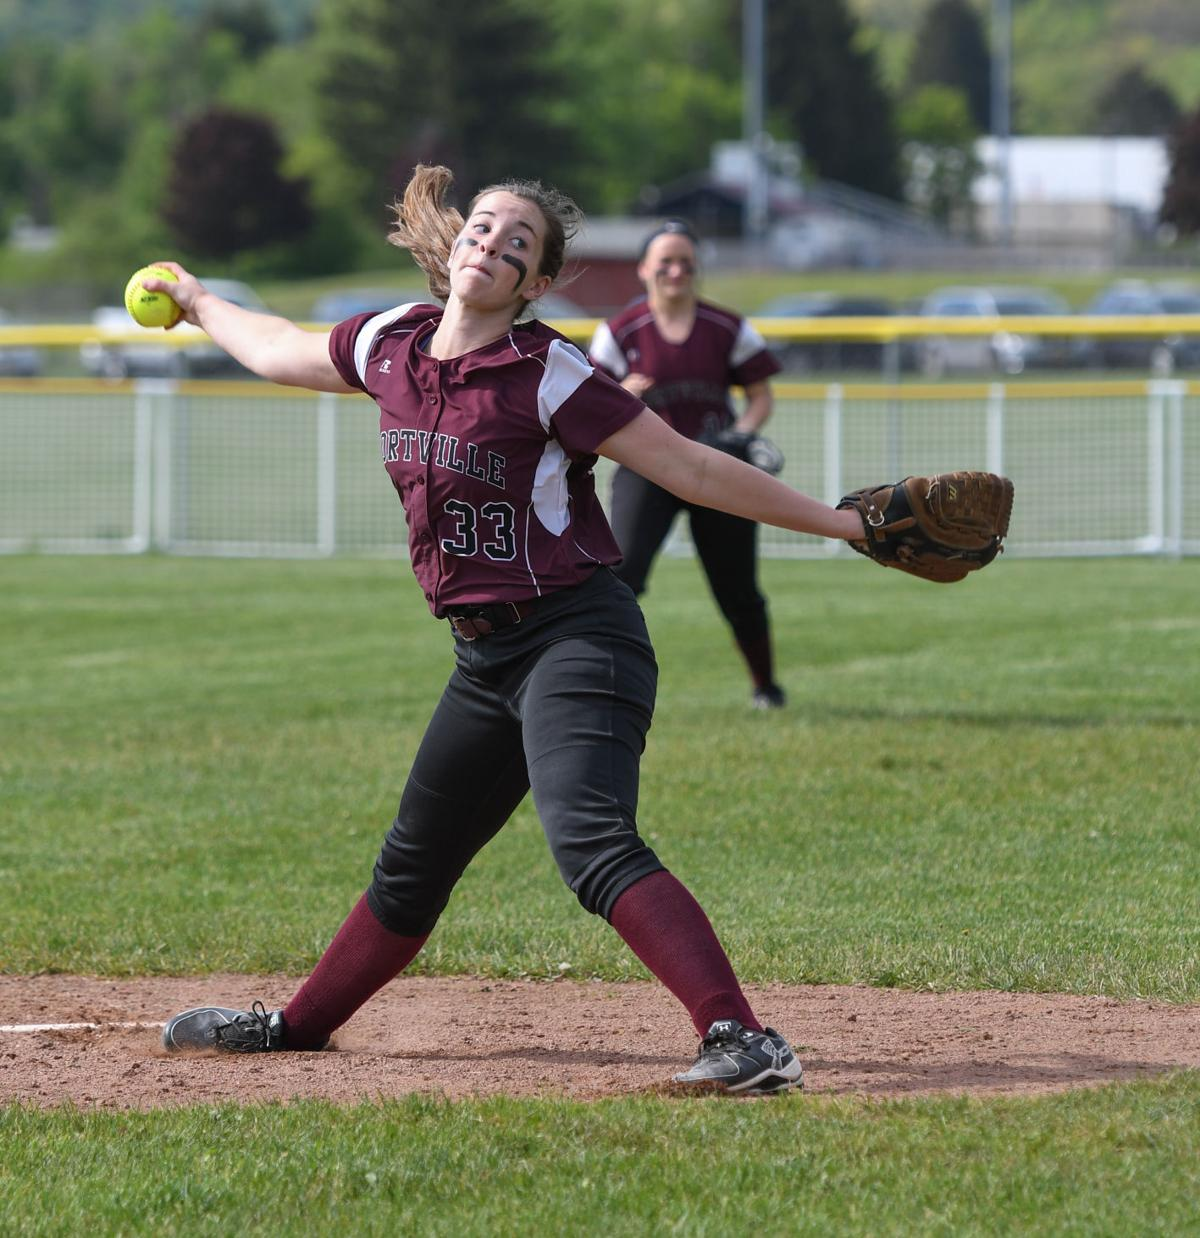 Olean Class Cars: Portville Avenges Loss To Make C-2 Finals